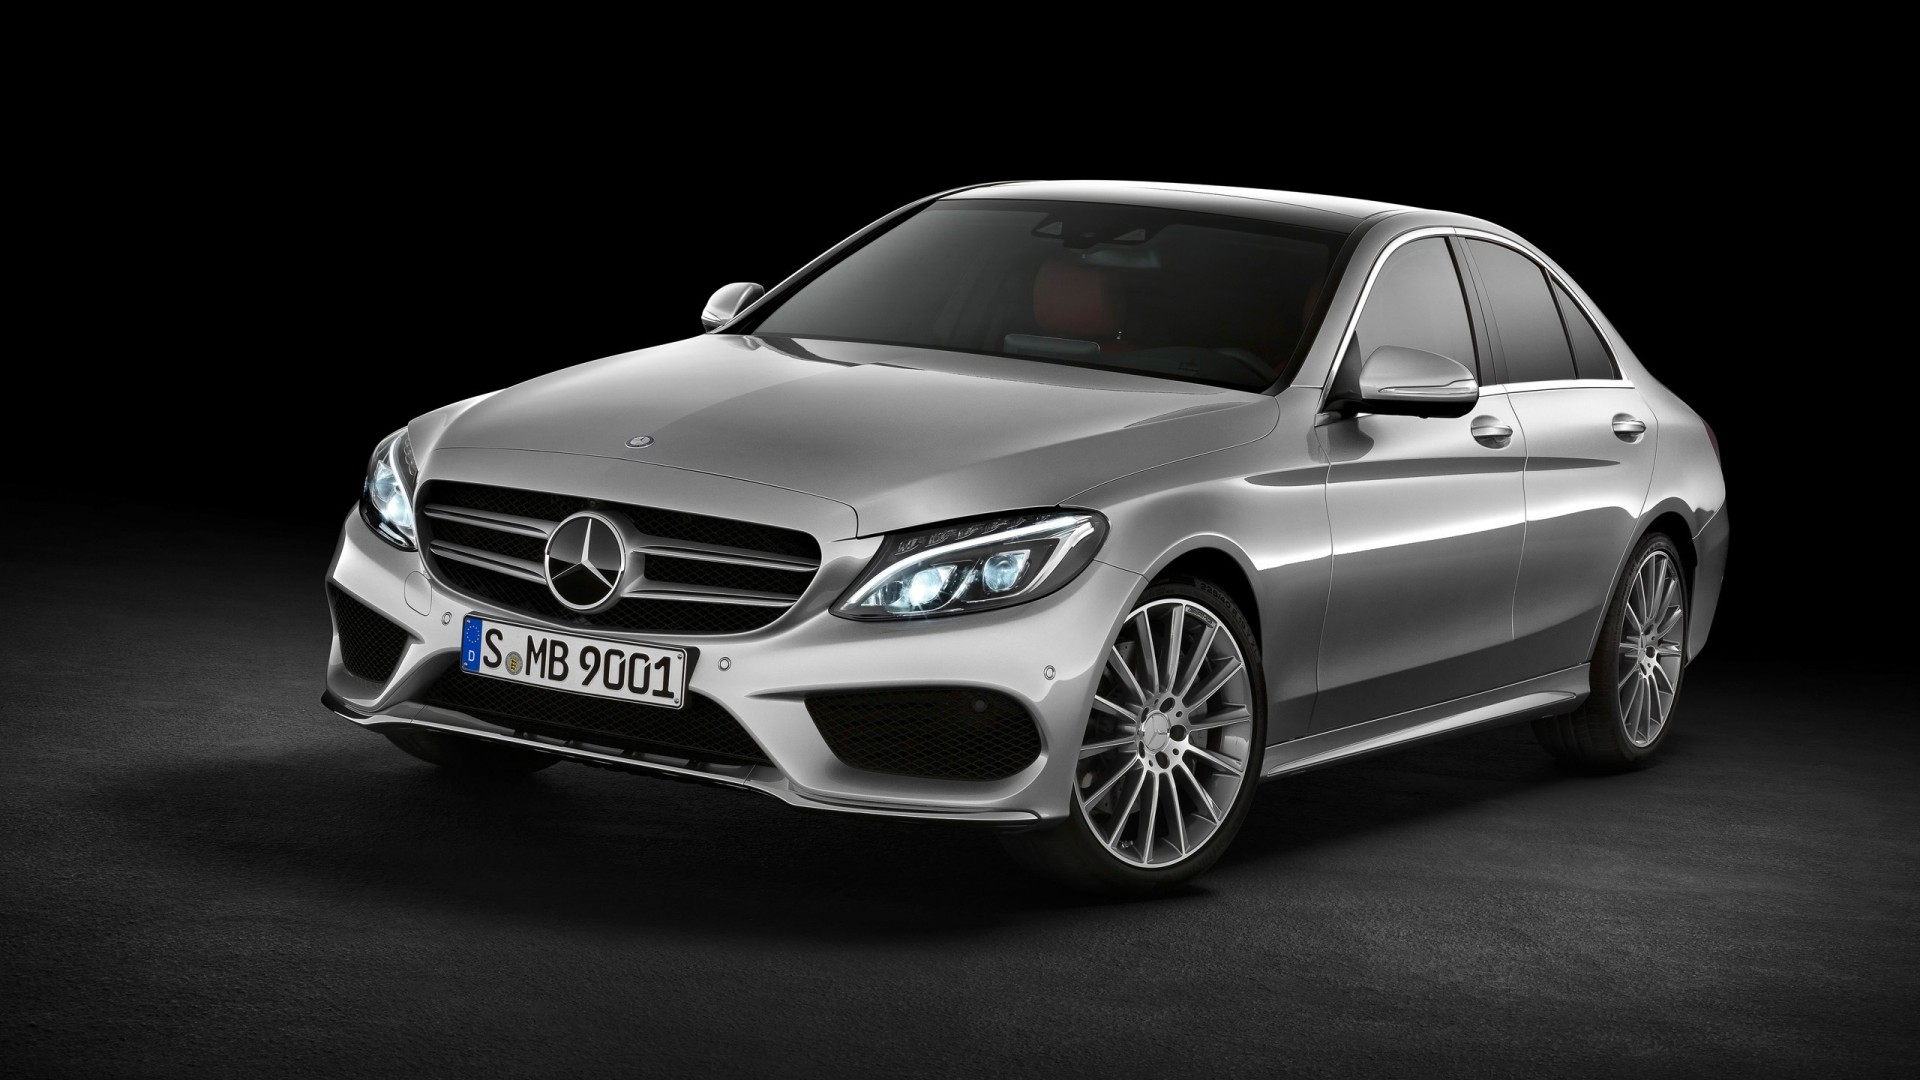 2014 Mercedes Benz C Class C250 AMG Avantgarde Wallpaper